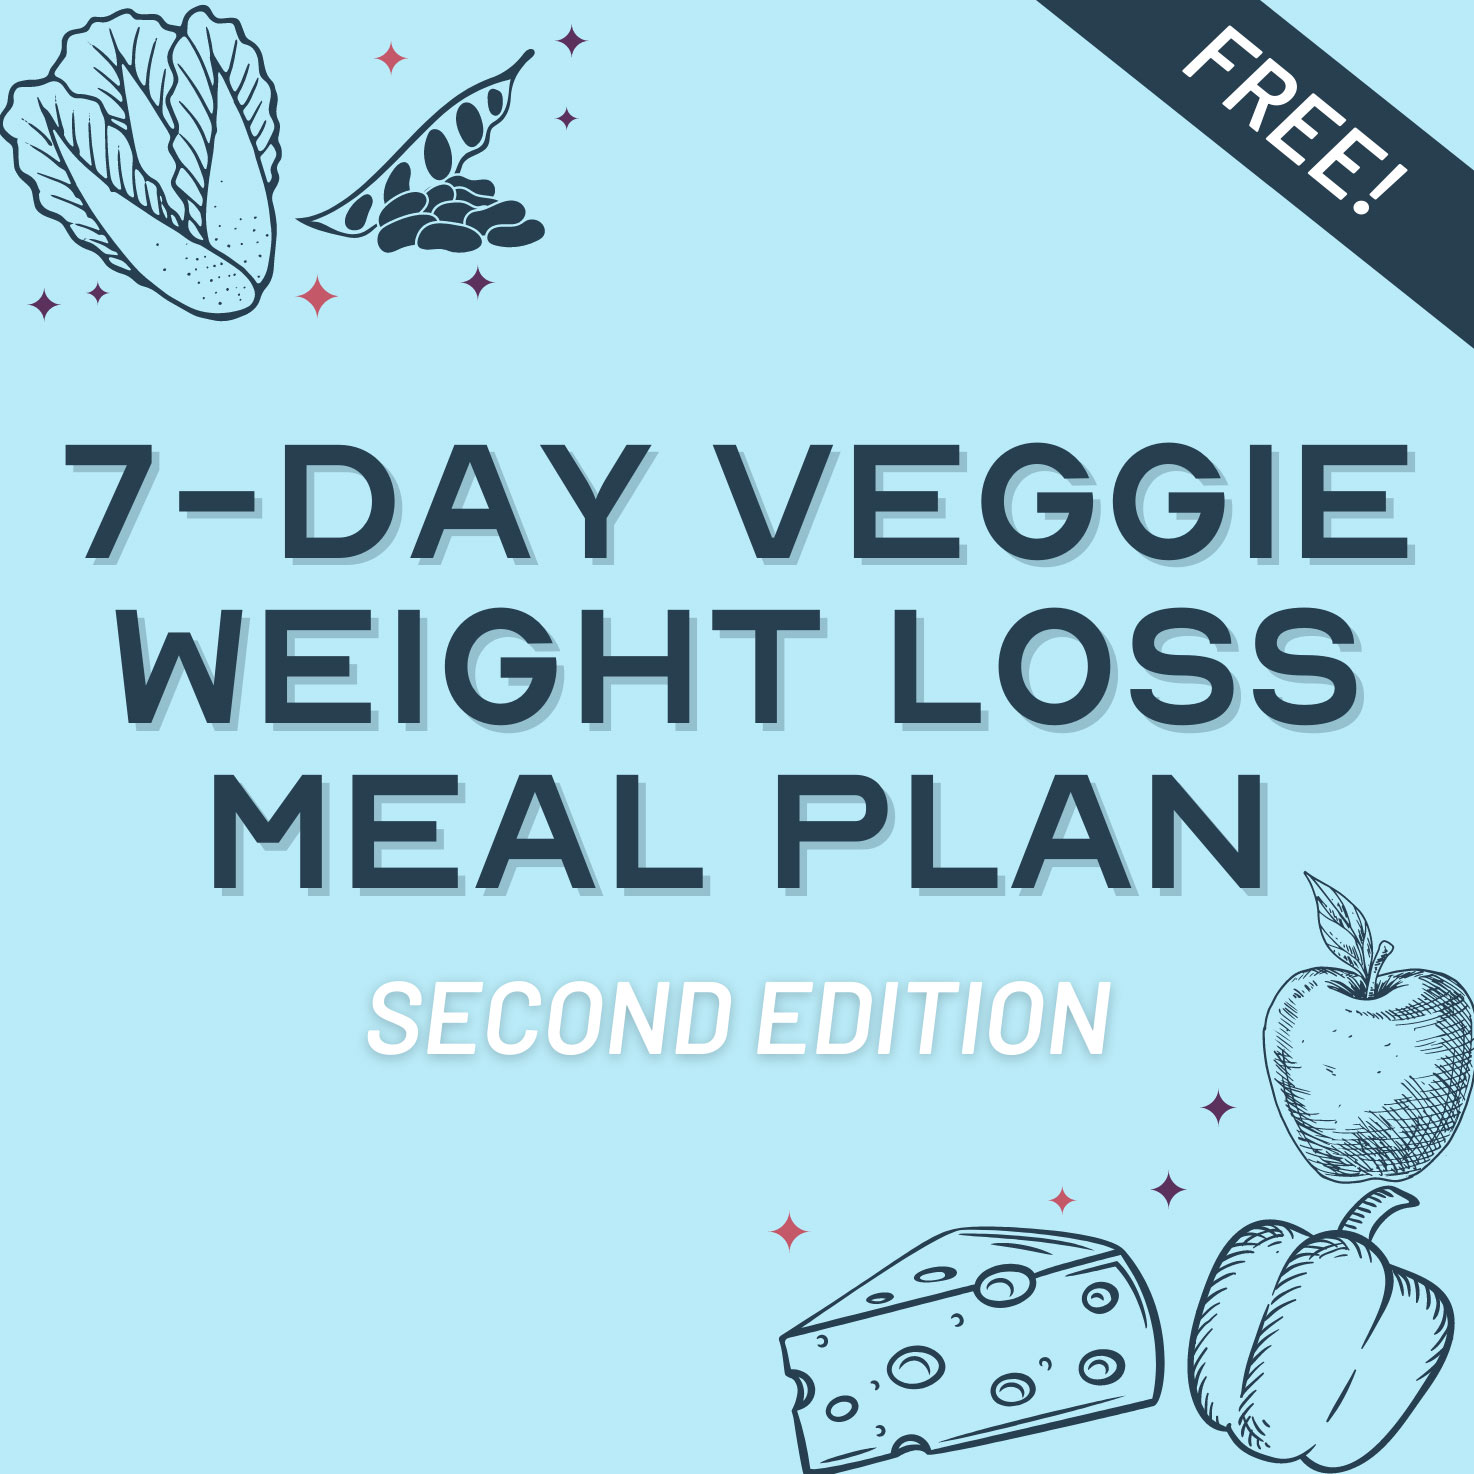 7-Day Vegetarian Weight Loss Meal Plan: 1500 kcal/day - Free